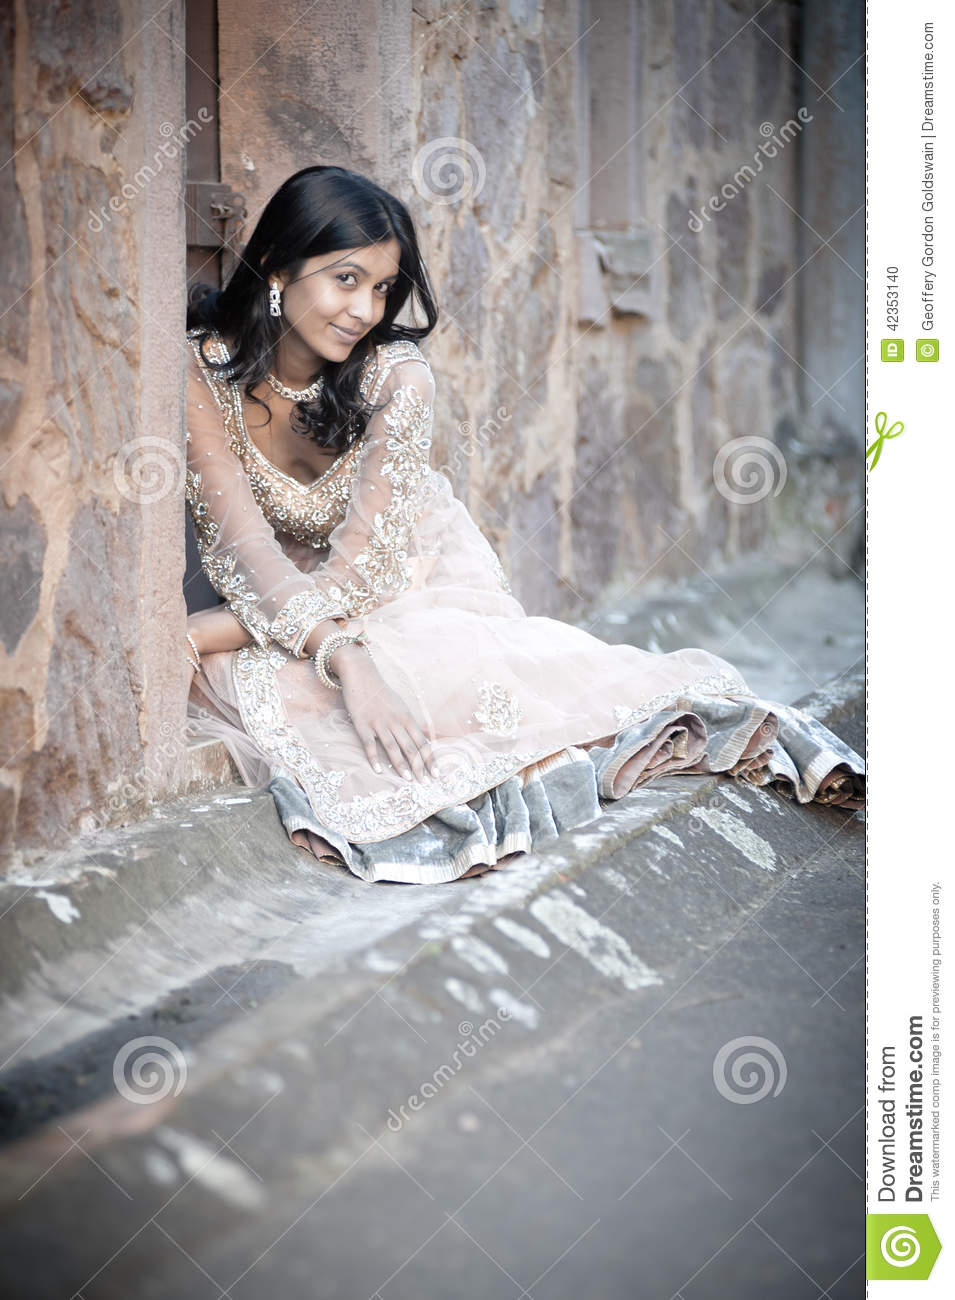 hindu single women in walling Download 116 indian naked women stock photos for free or amazingly low rates new users enjoy 60% off 85,329,948 stock photos online  sexy women legs in indian shoes man and women in.